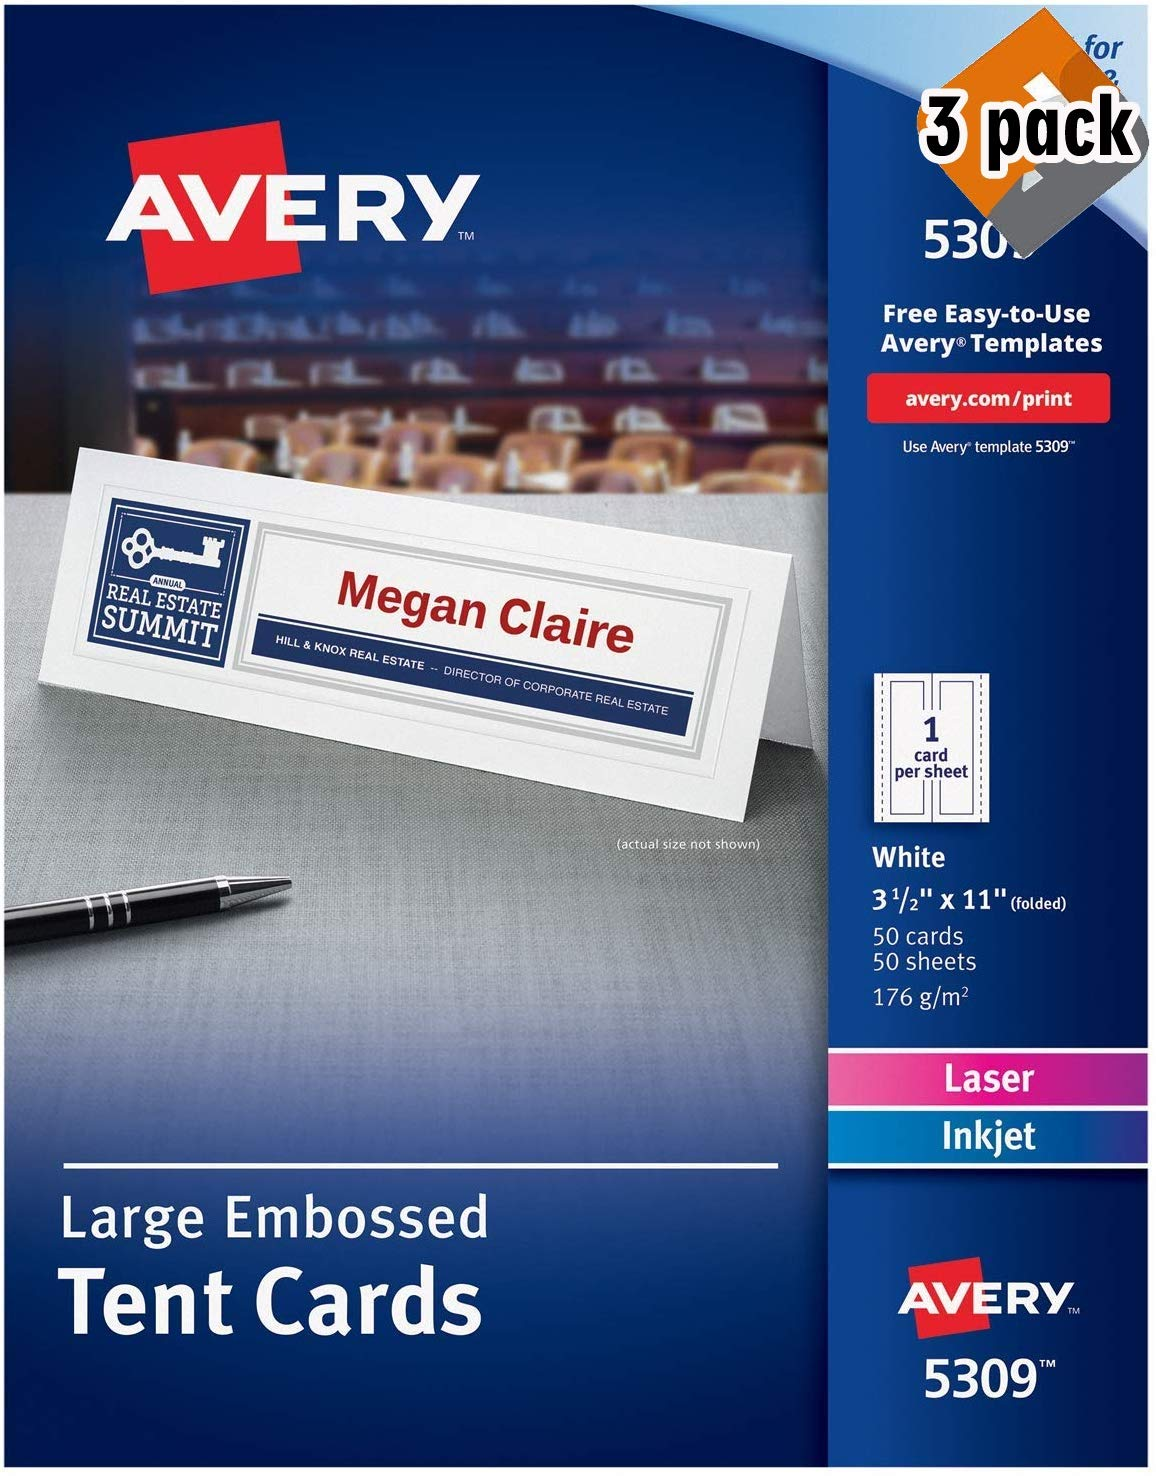 Avery Printable Large Tent Cards, Laser & Inkjet Printers, 3 Pack (50 Cards, 3.5 x 11, White) by AVERY